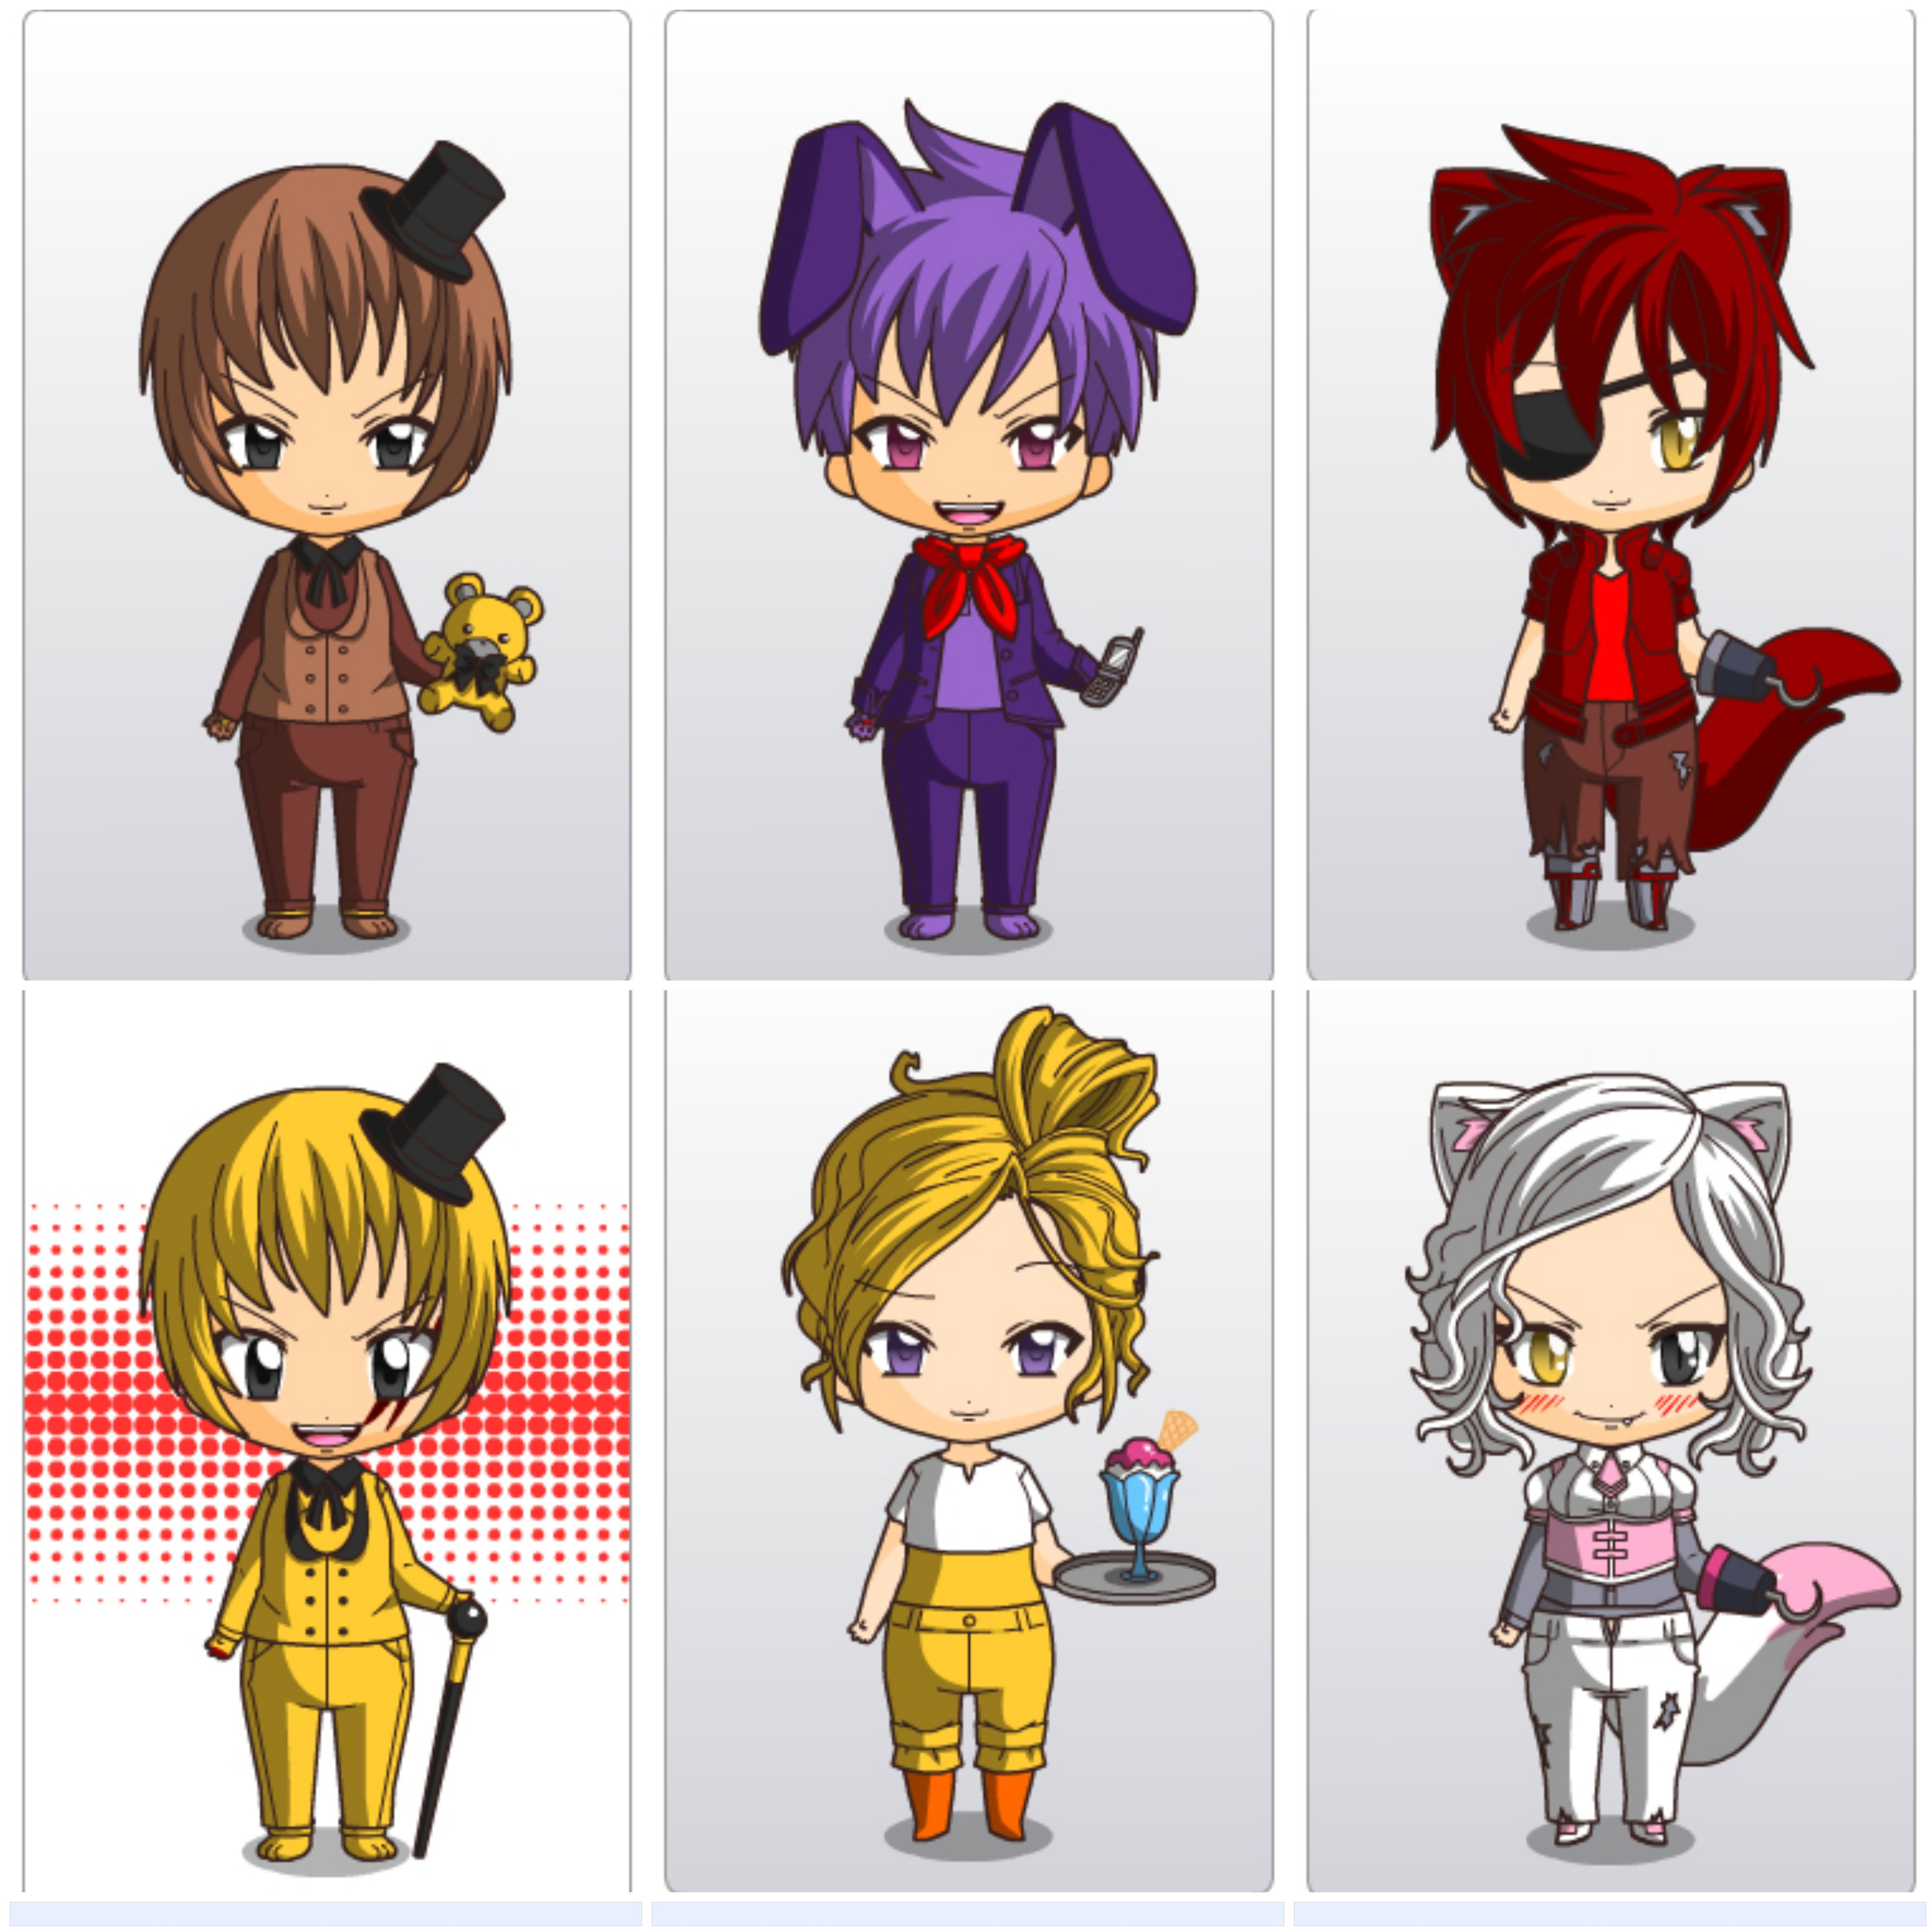 fnaf chibi remake on chibi maker by pinkwig12 Five Night